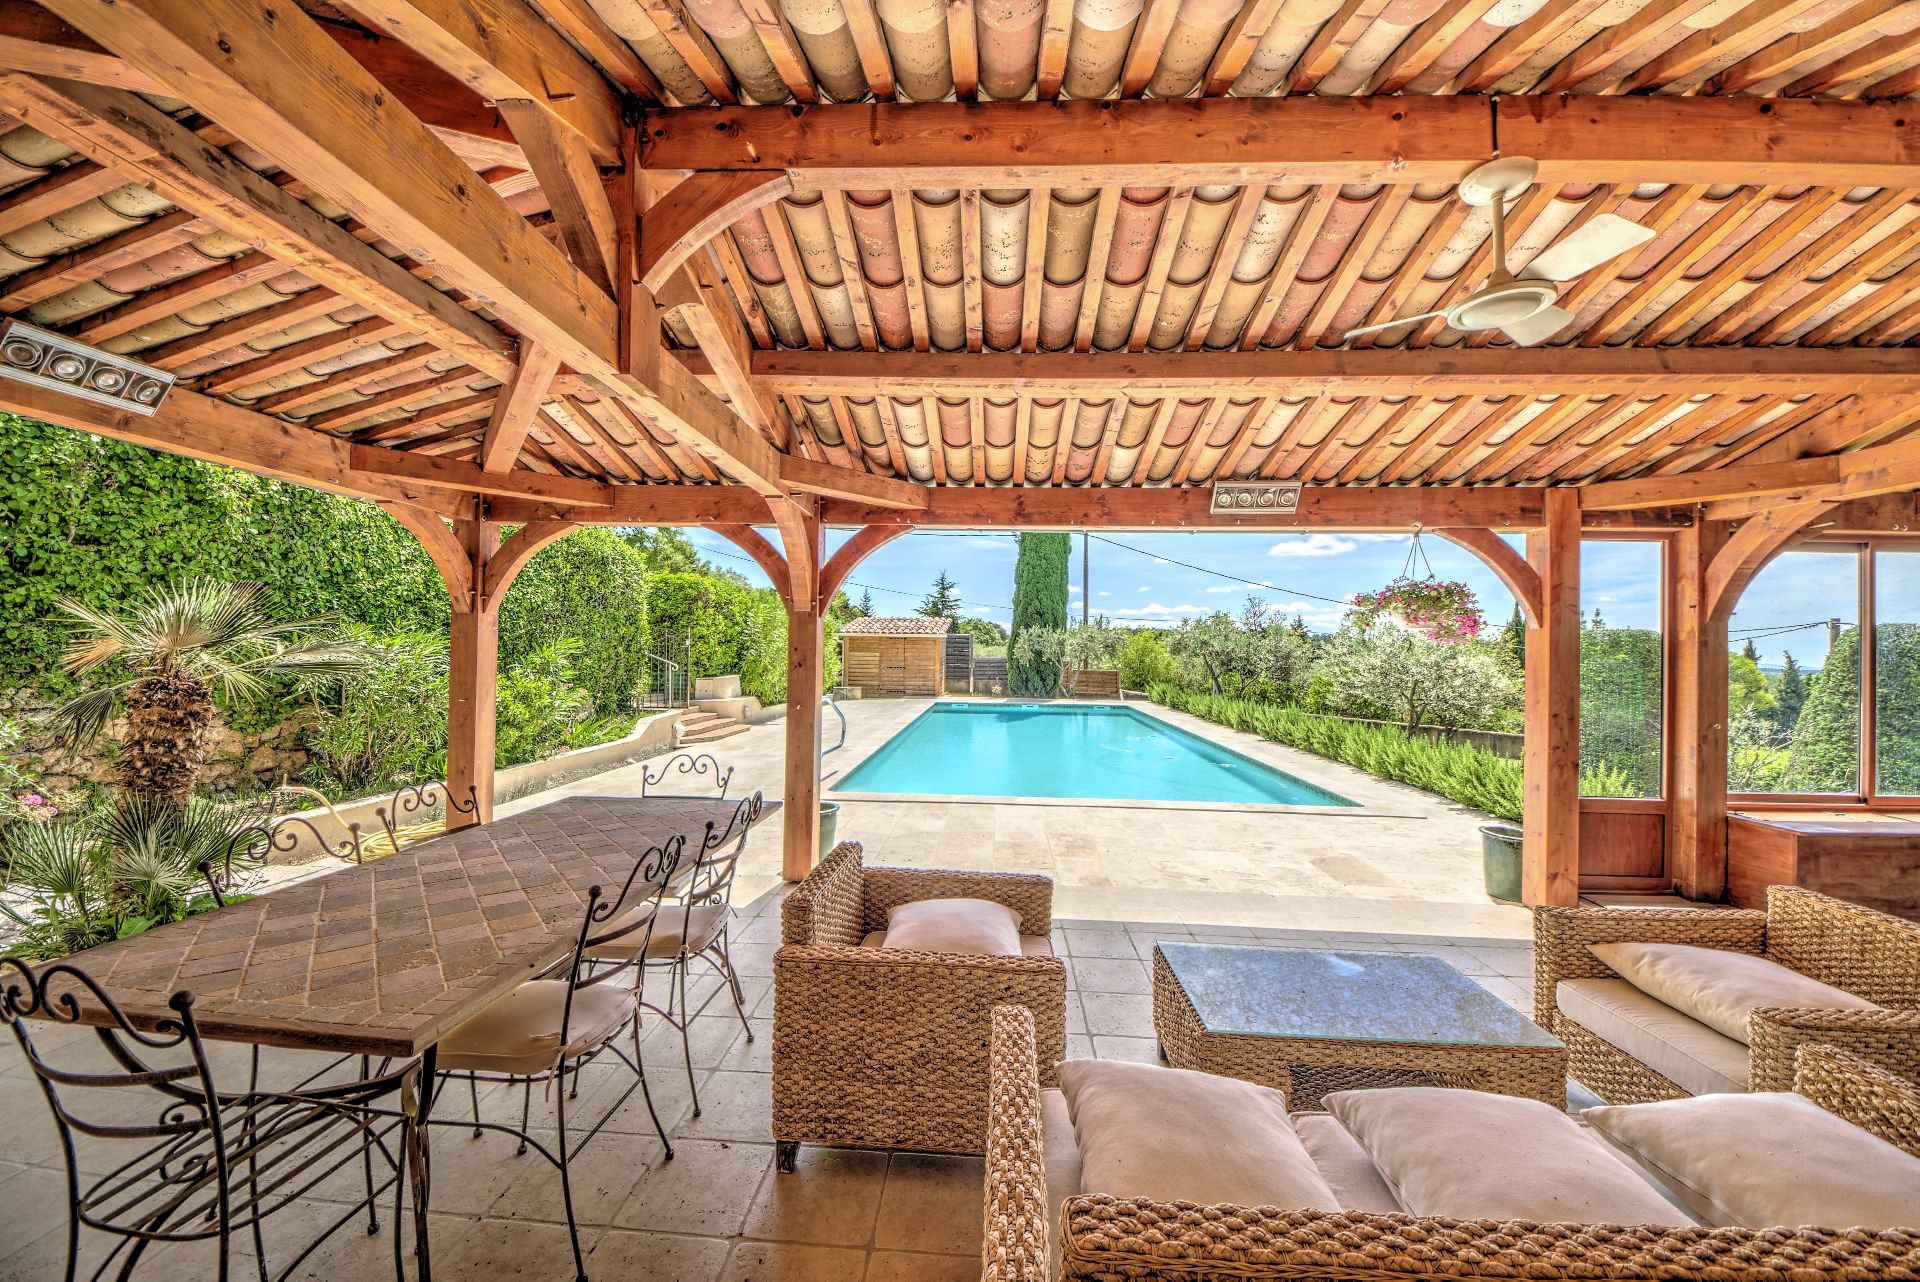 View pool house fully renovated house 5 bedrooms, 318 m², Aups, Var, Provence, Verdon